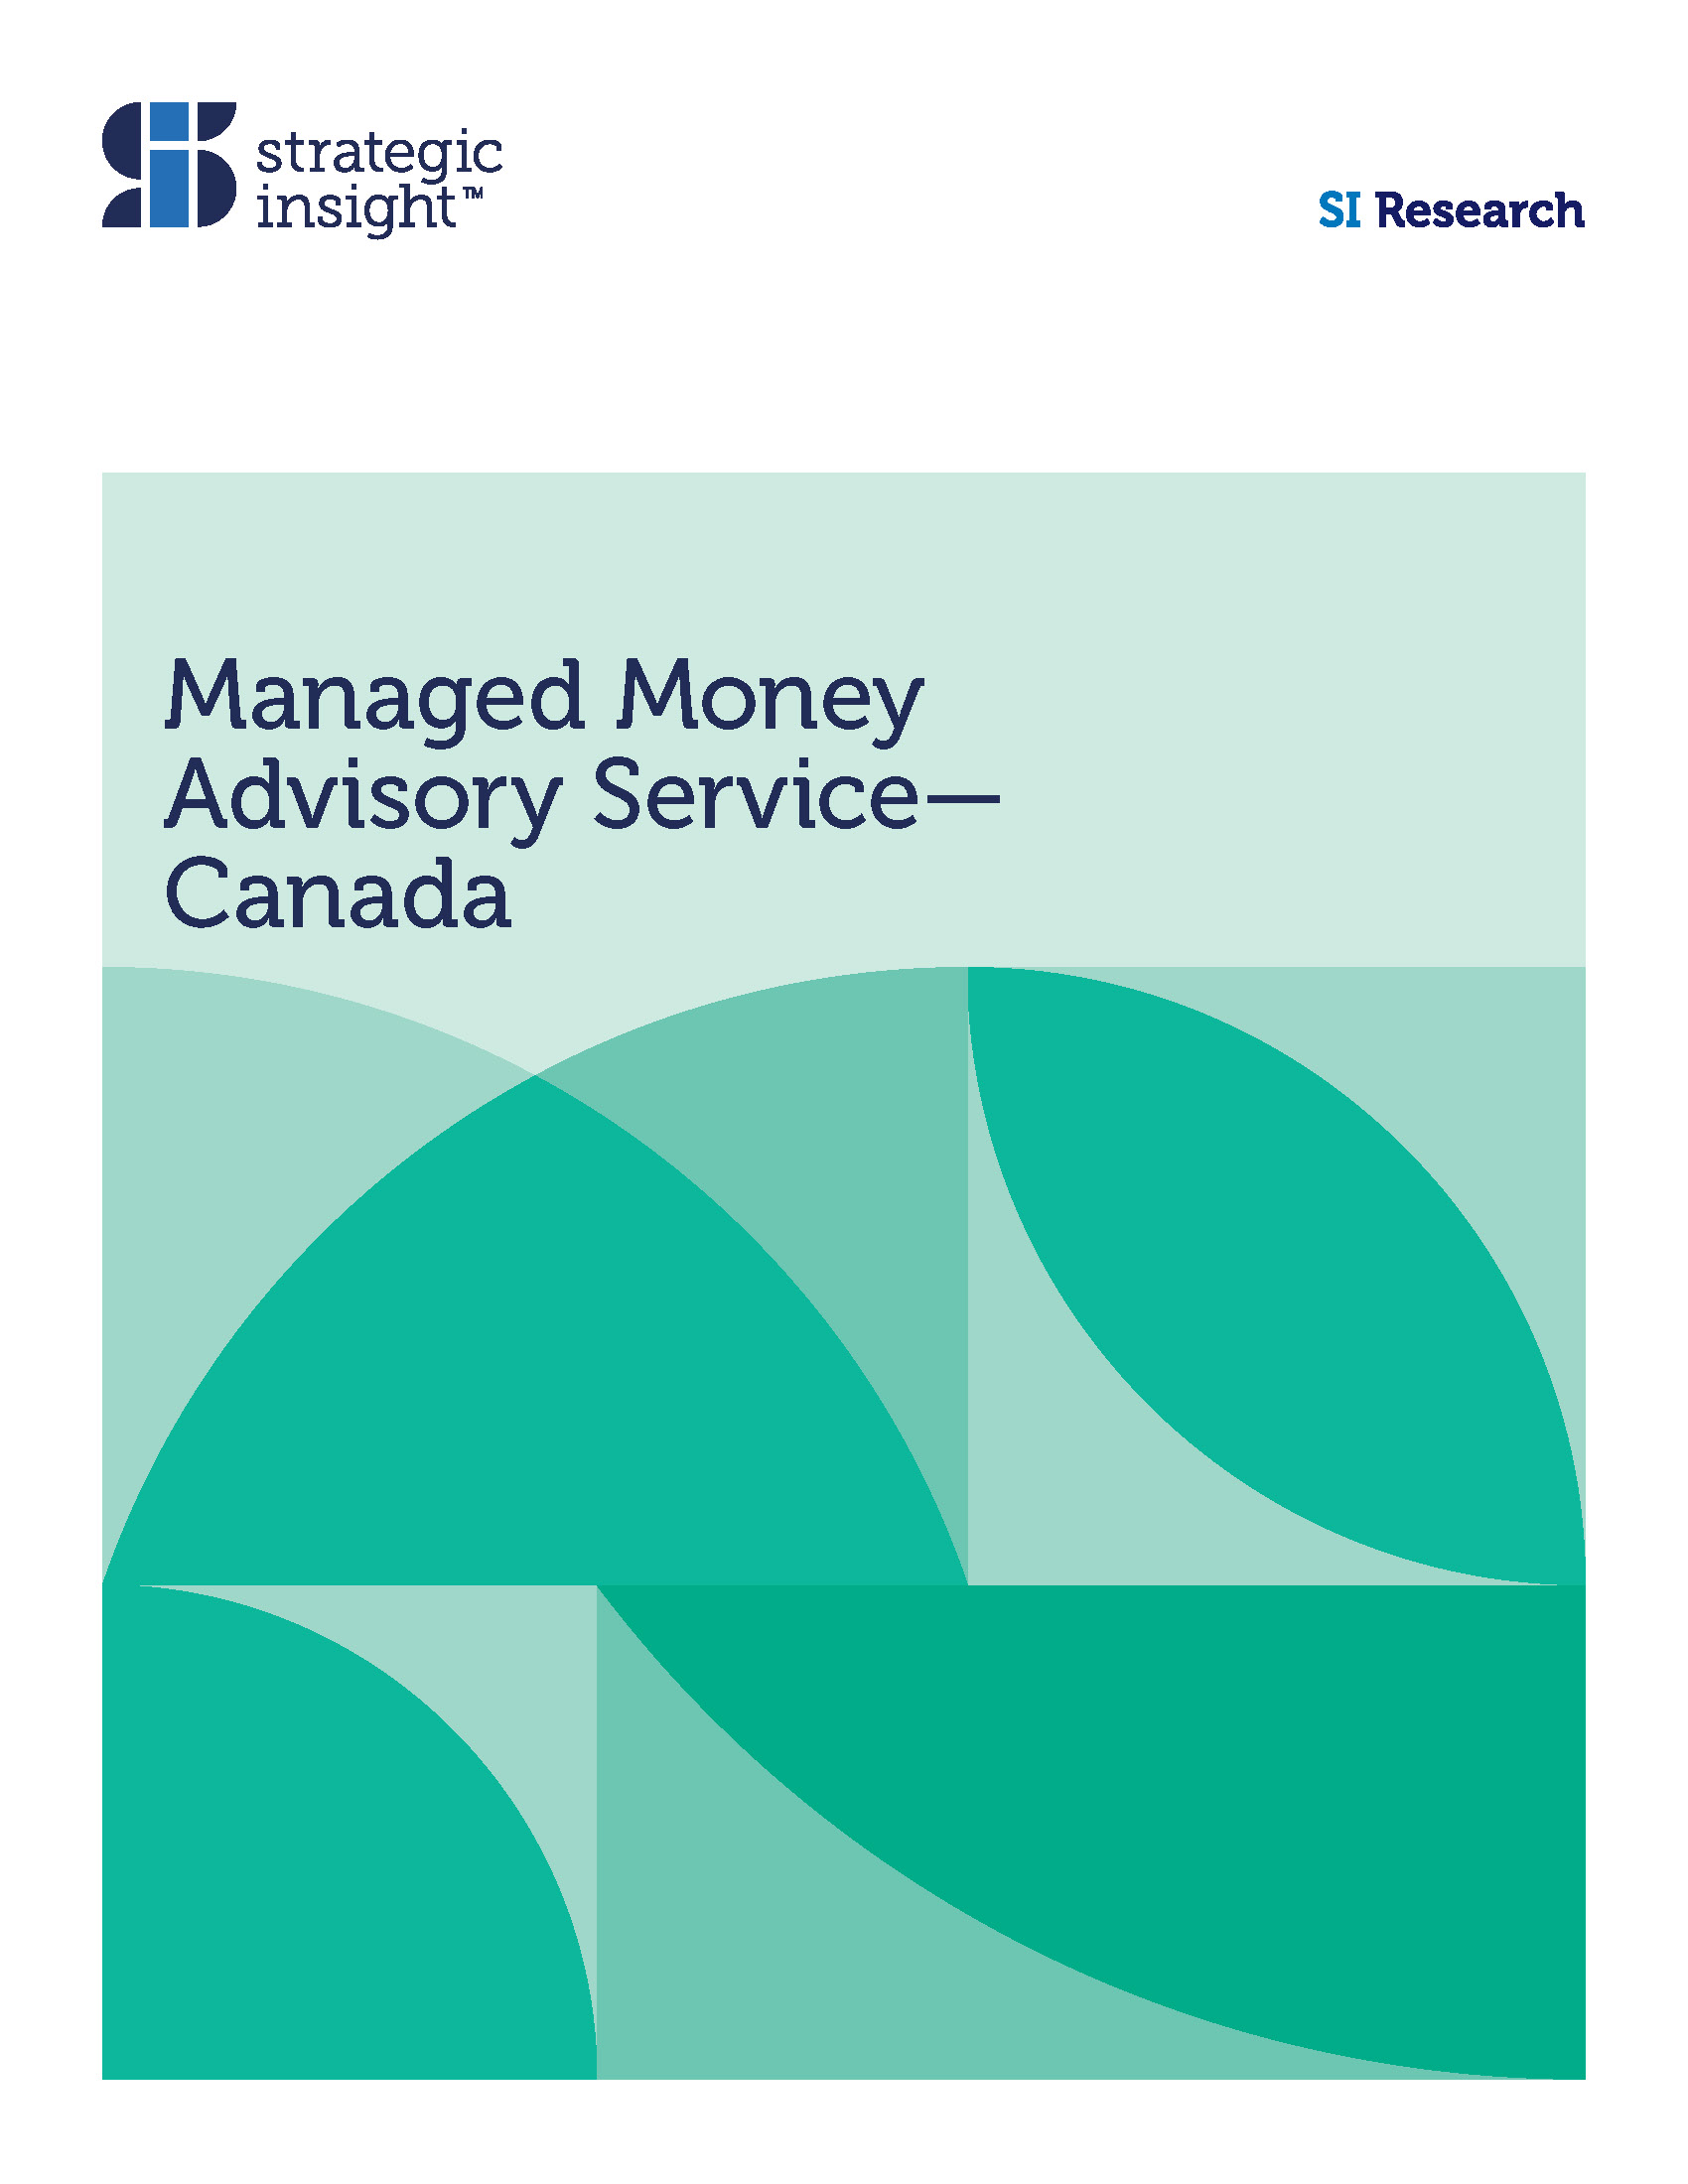 Managed Money Advisory Service Spring 2018